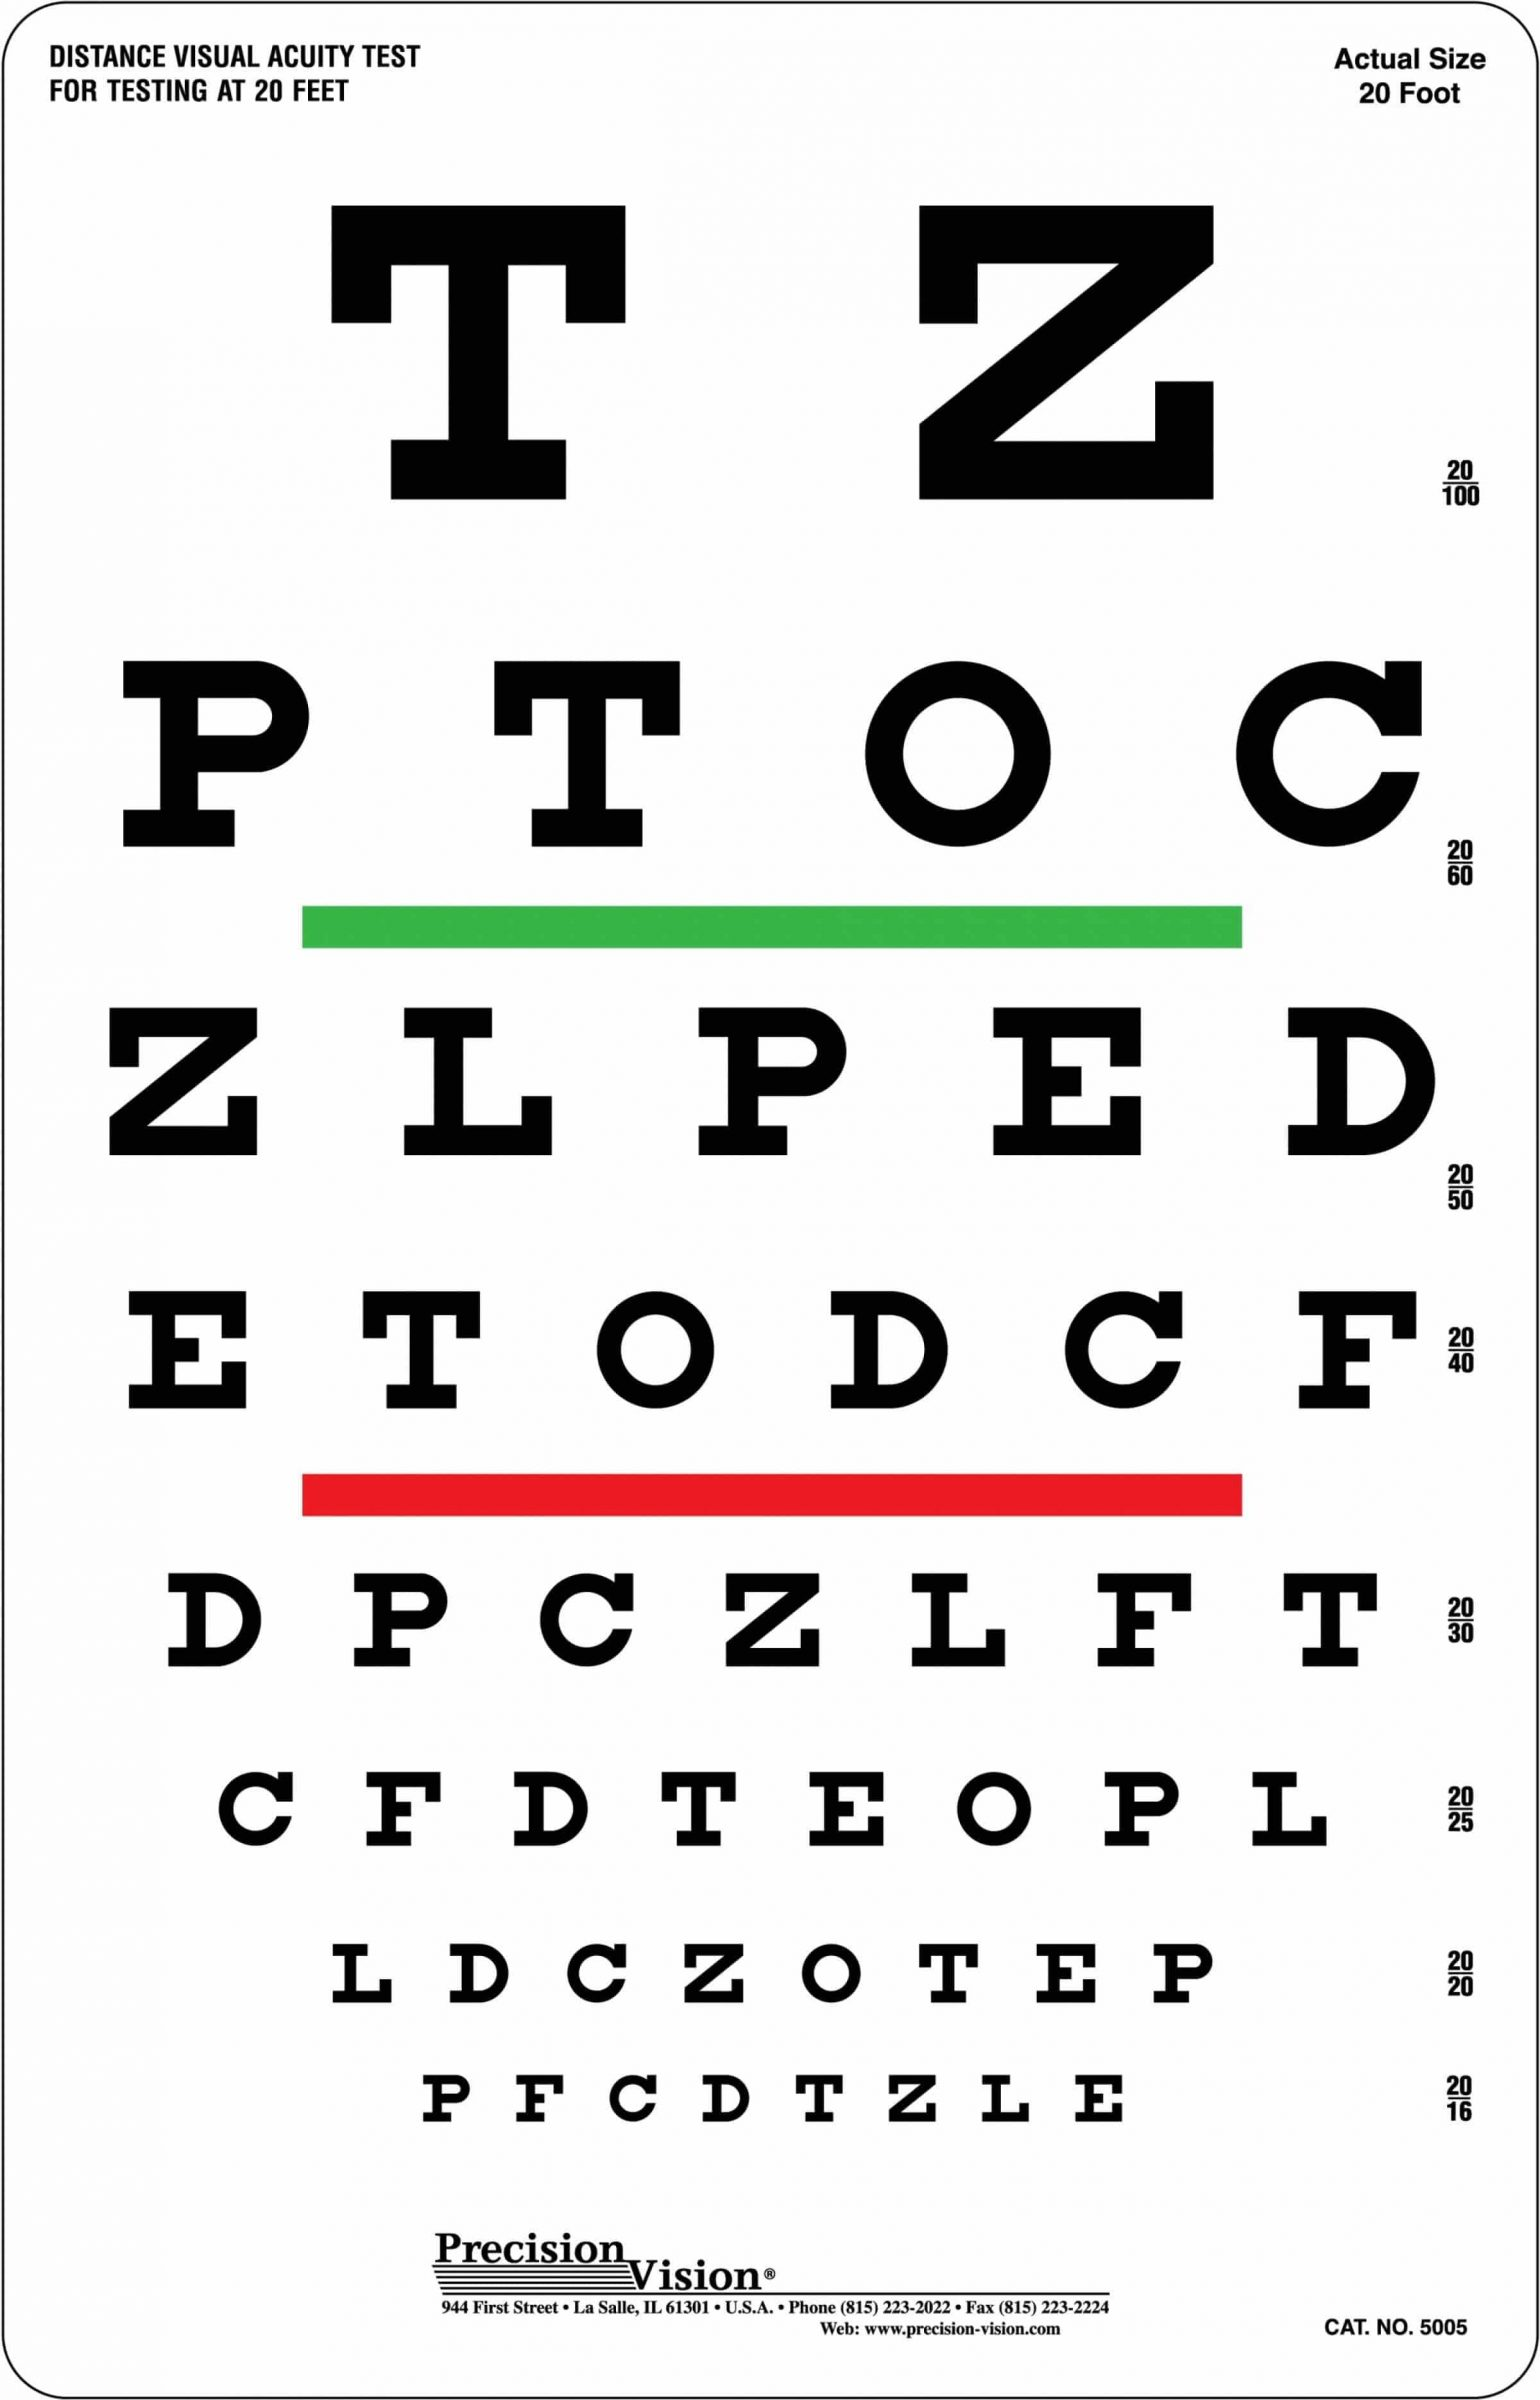 Are All Eye Charts The Same : charts, Snellen, Chart, Visual, Acuity, Color, Vision, Precision